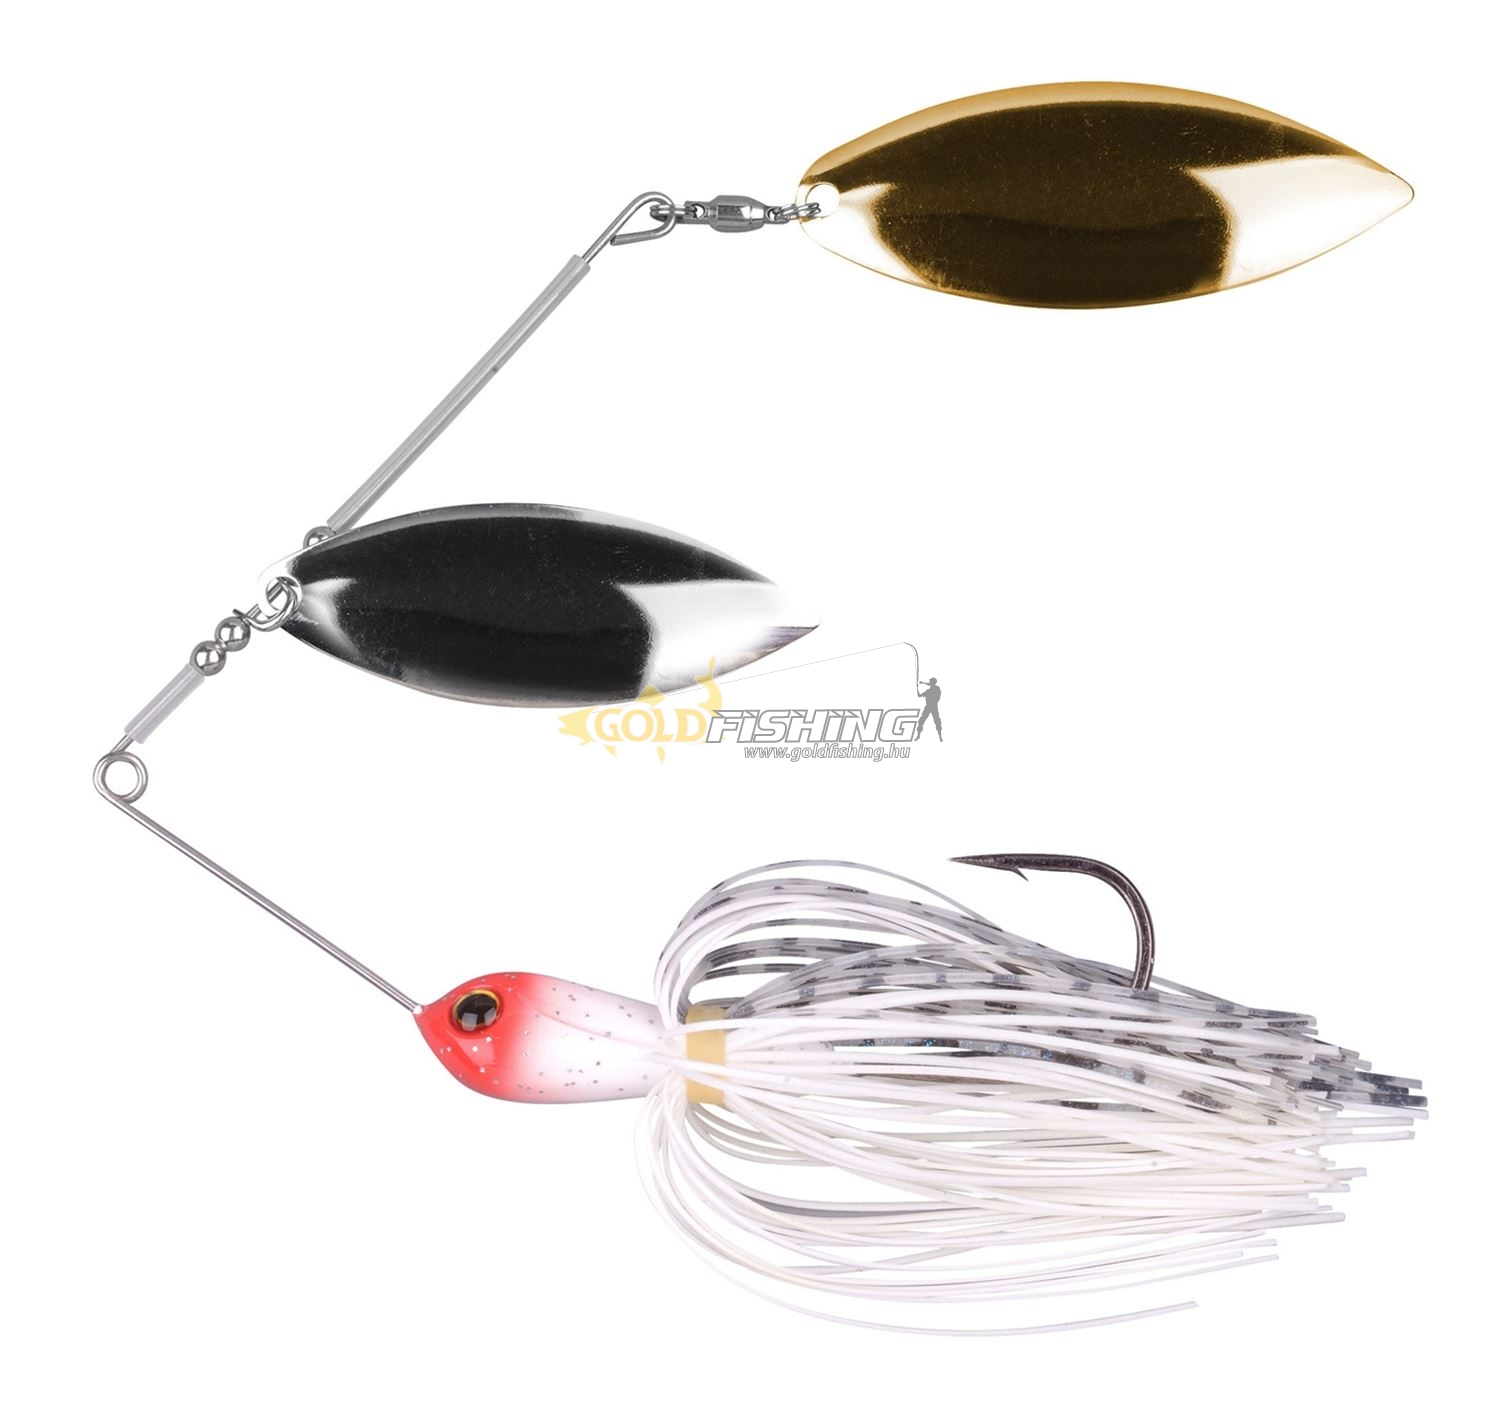 ringed spinnerbait 14 - rED HEAD